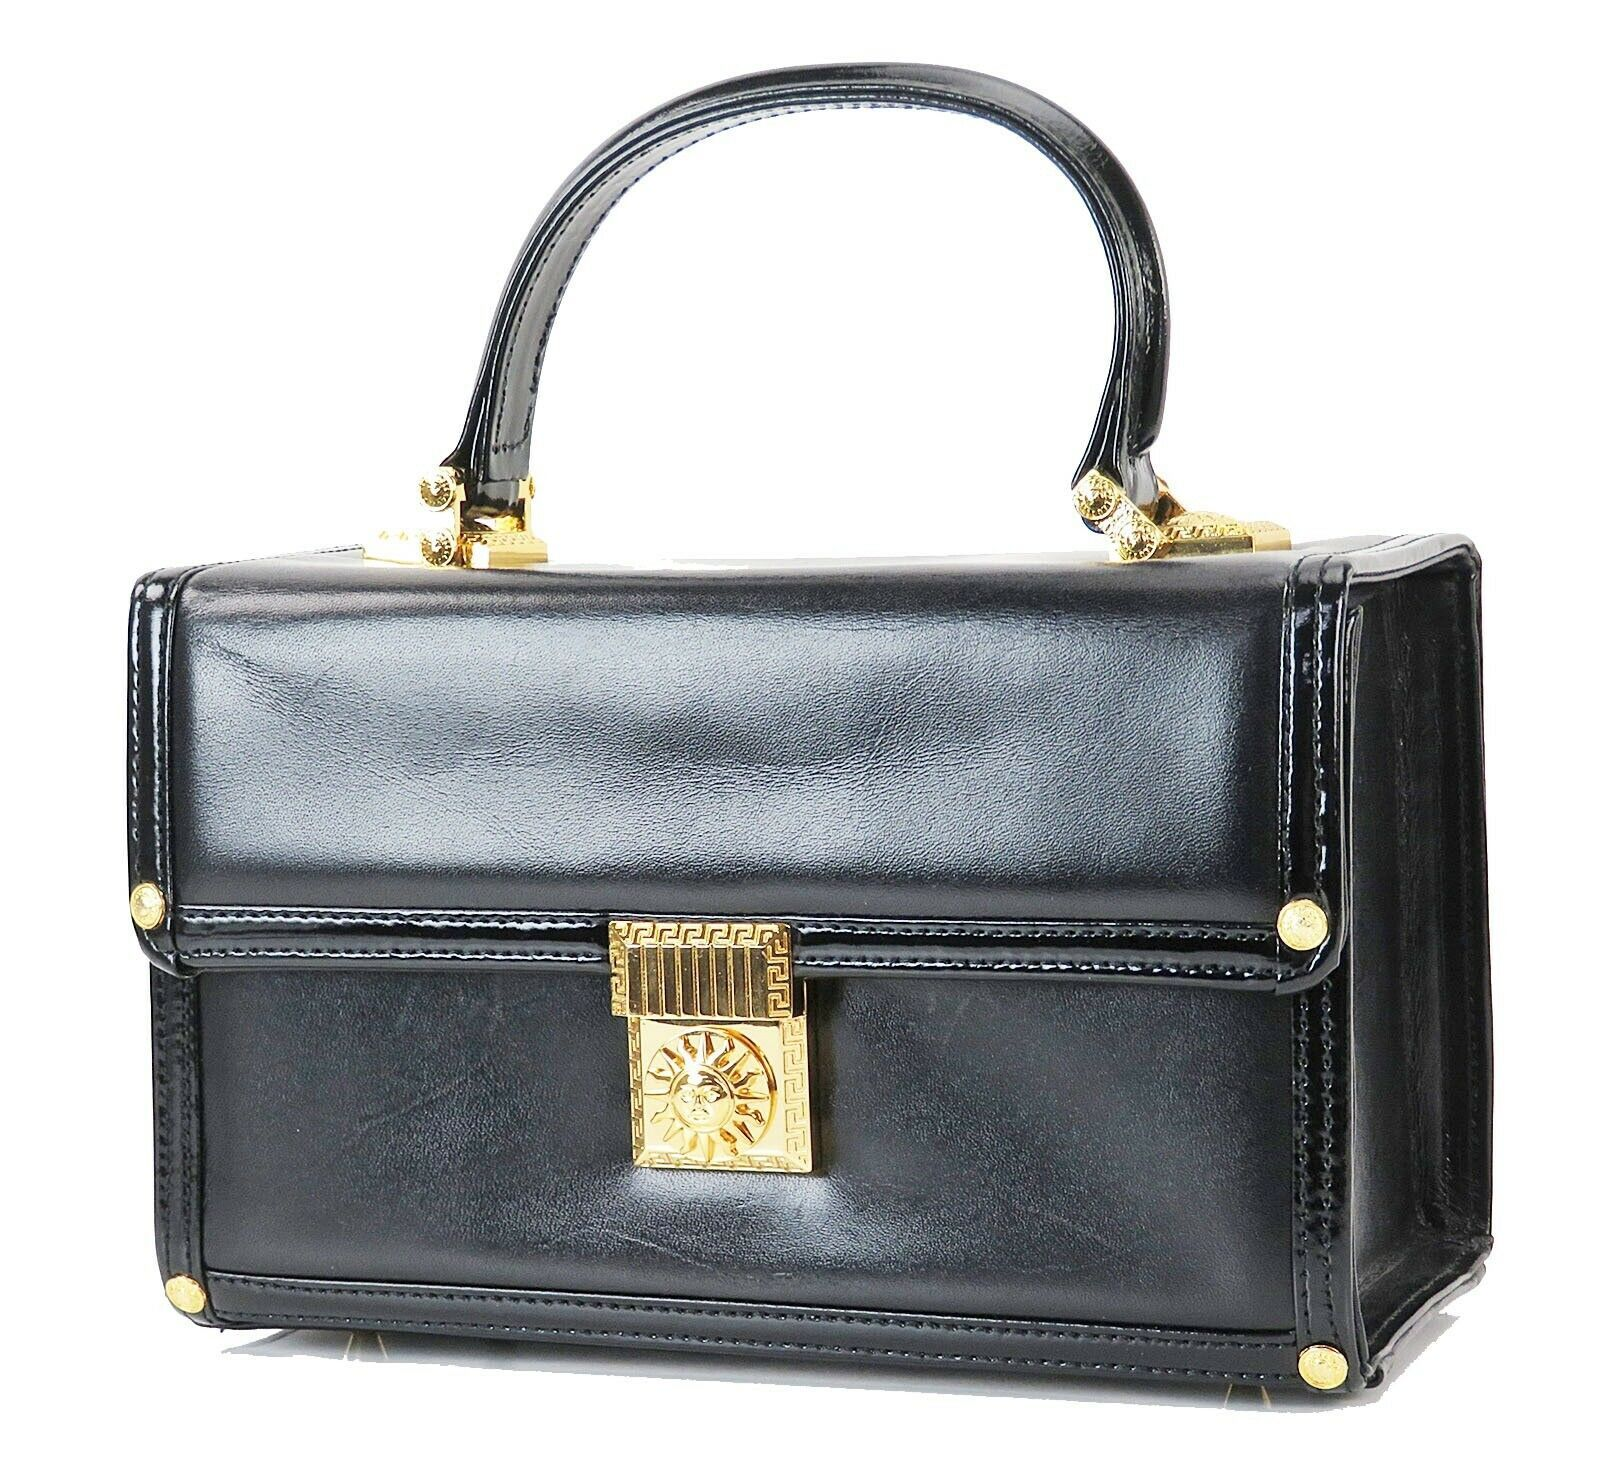 Primary image for Auth GIANNI VERSACE Sun Logo Black Leather Vanity Cosmetics Box Bag #30080